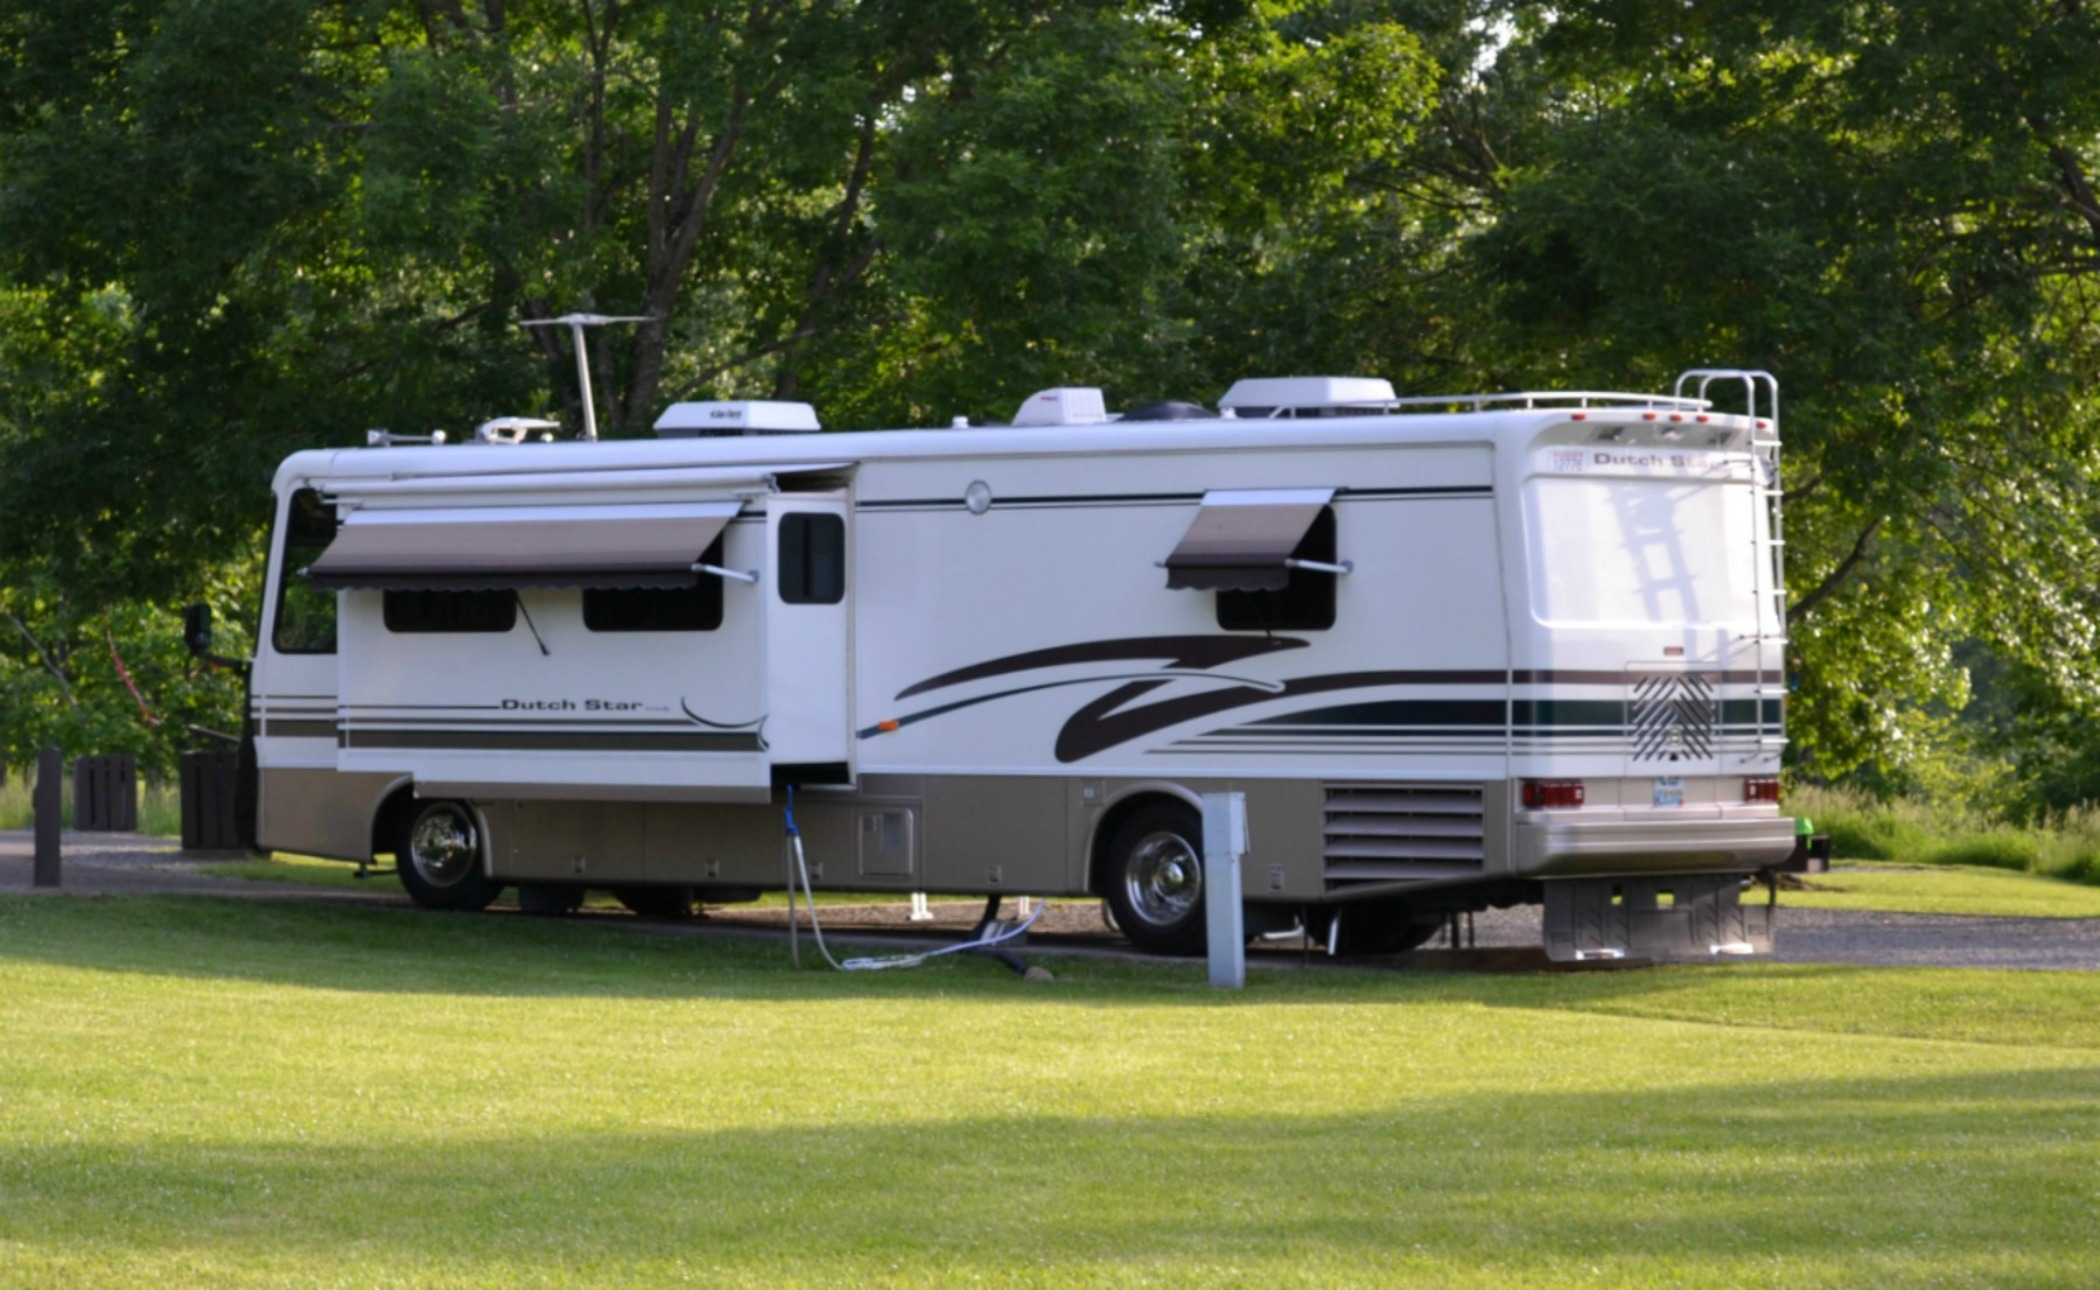 rv travel, camping